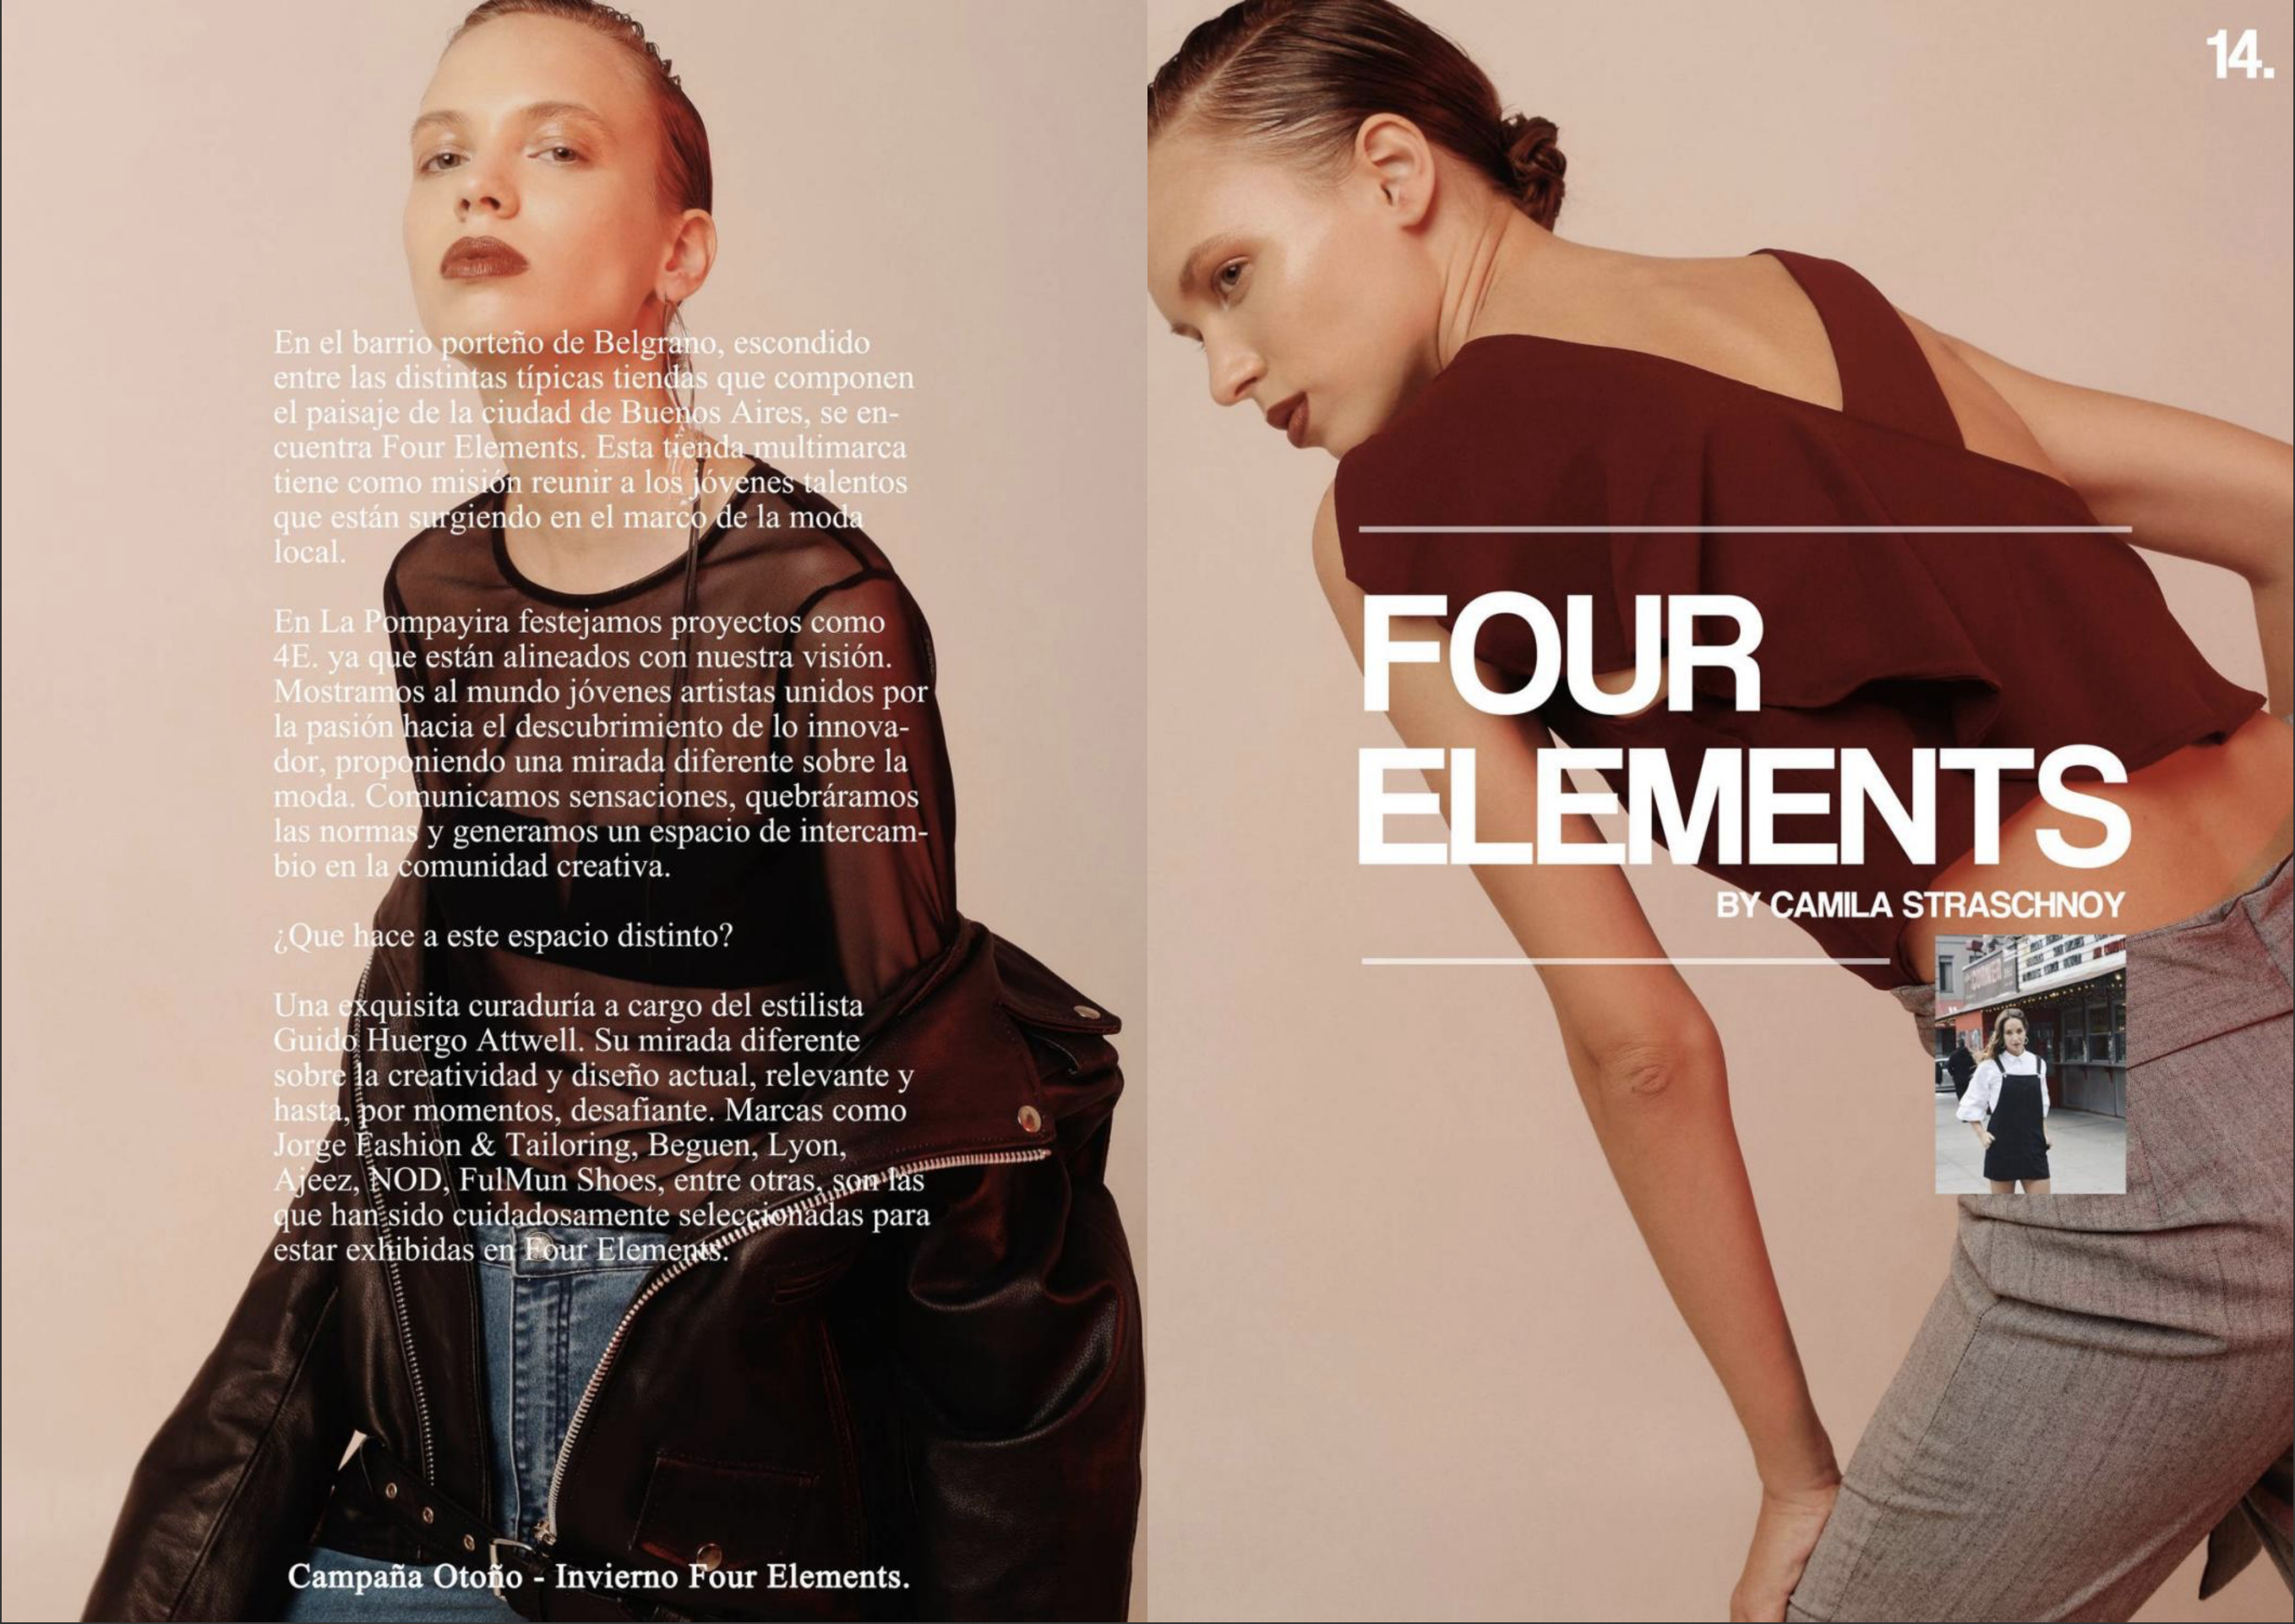 La Pompayira Issue 38 Four Elements by Camila Straschnoy